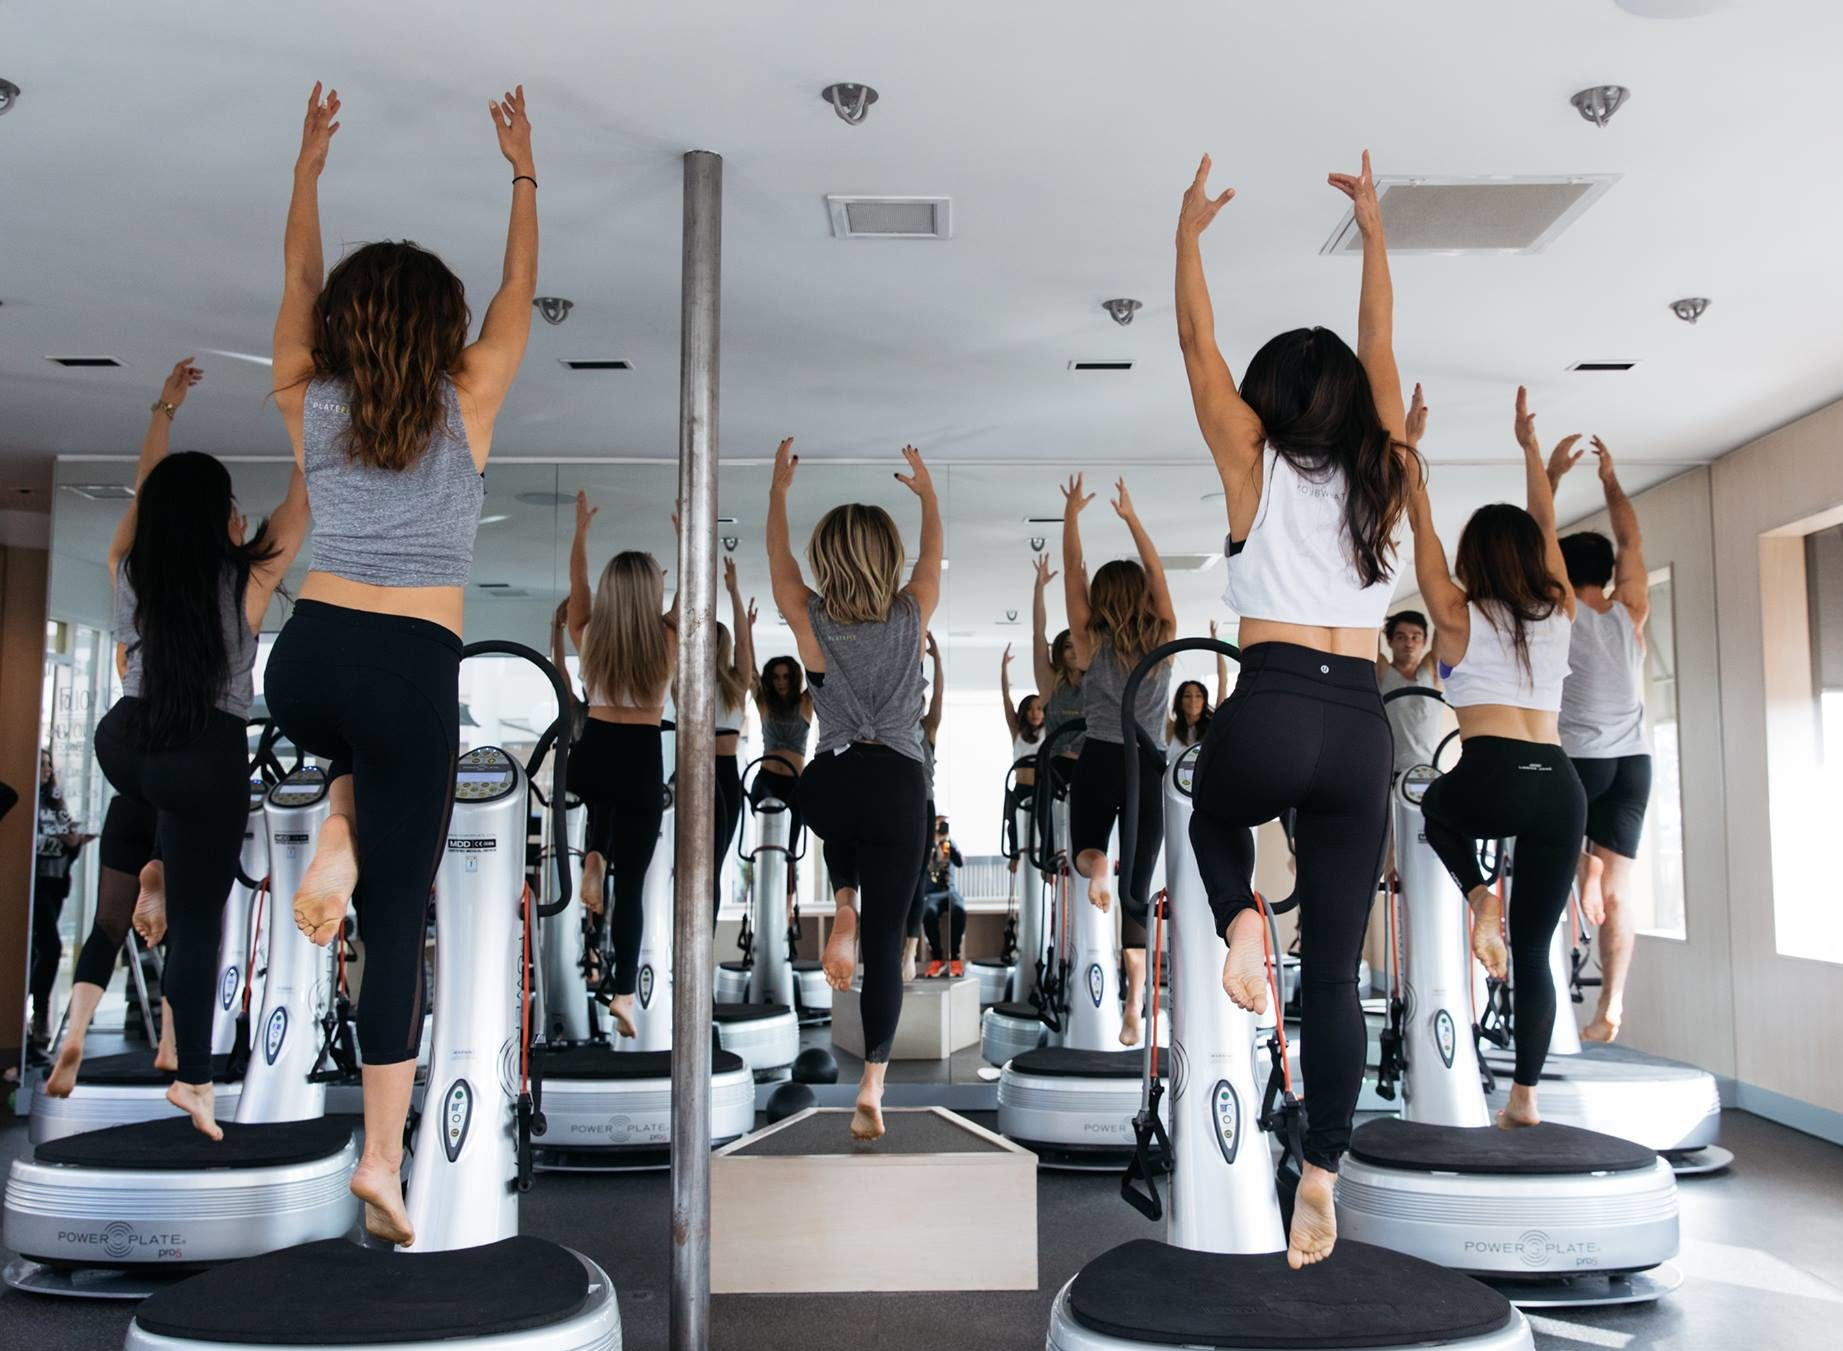 all of the best sweat spots in los angeles fitt los angelesbetween surfing, lifting weights at muscle beach and trying out the newest celebrity workouts, la has so many fitness options that it can seem impossible to